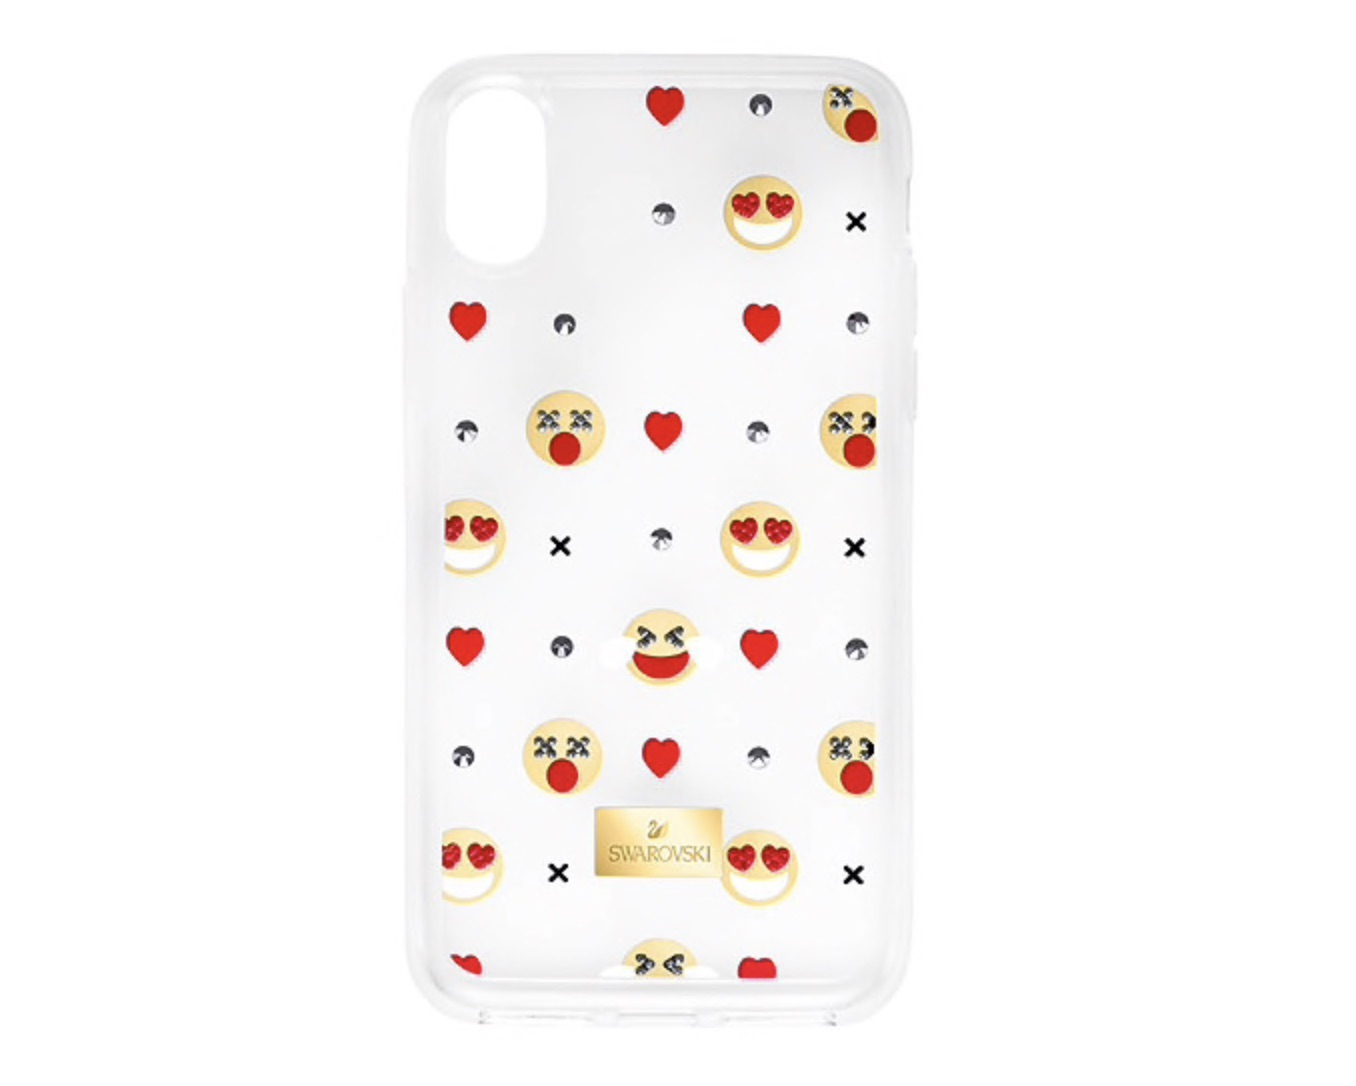 swarovski-iphone-emoji-case